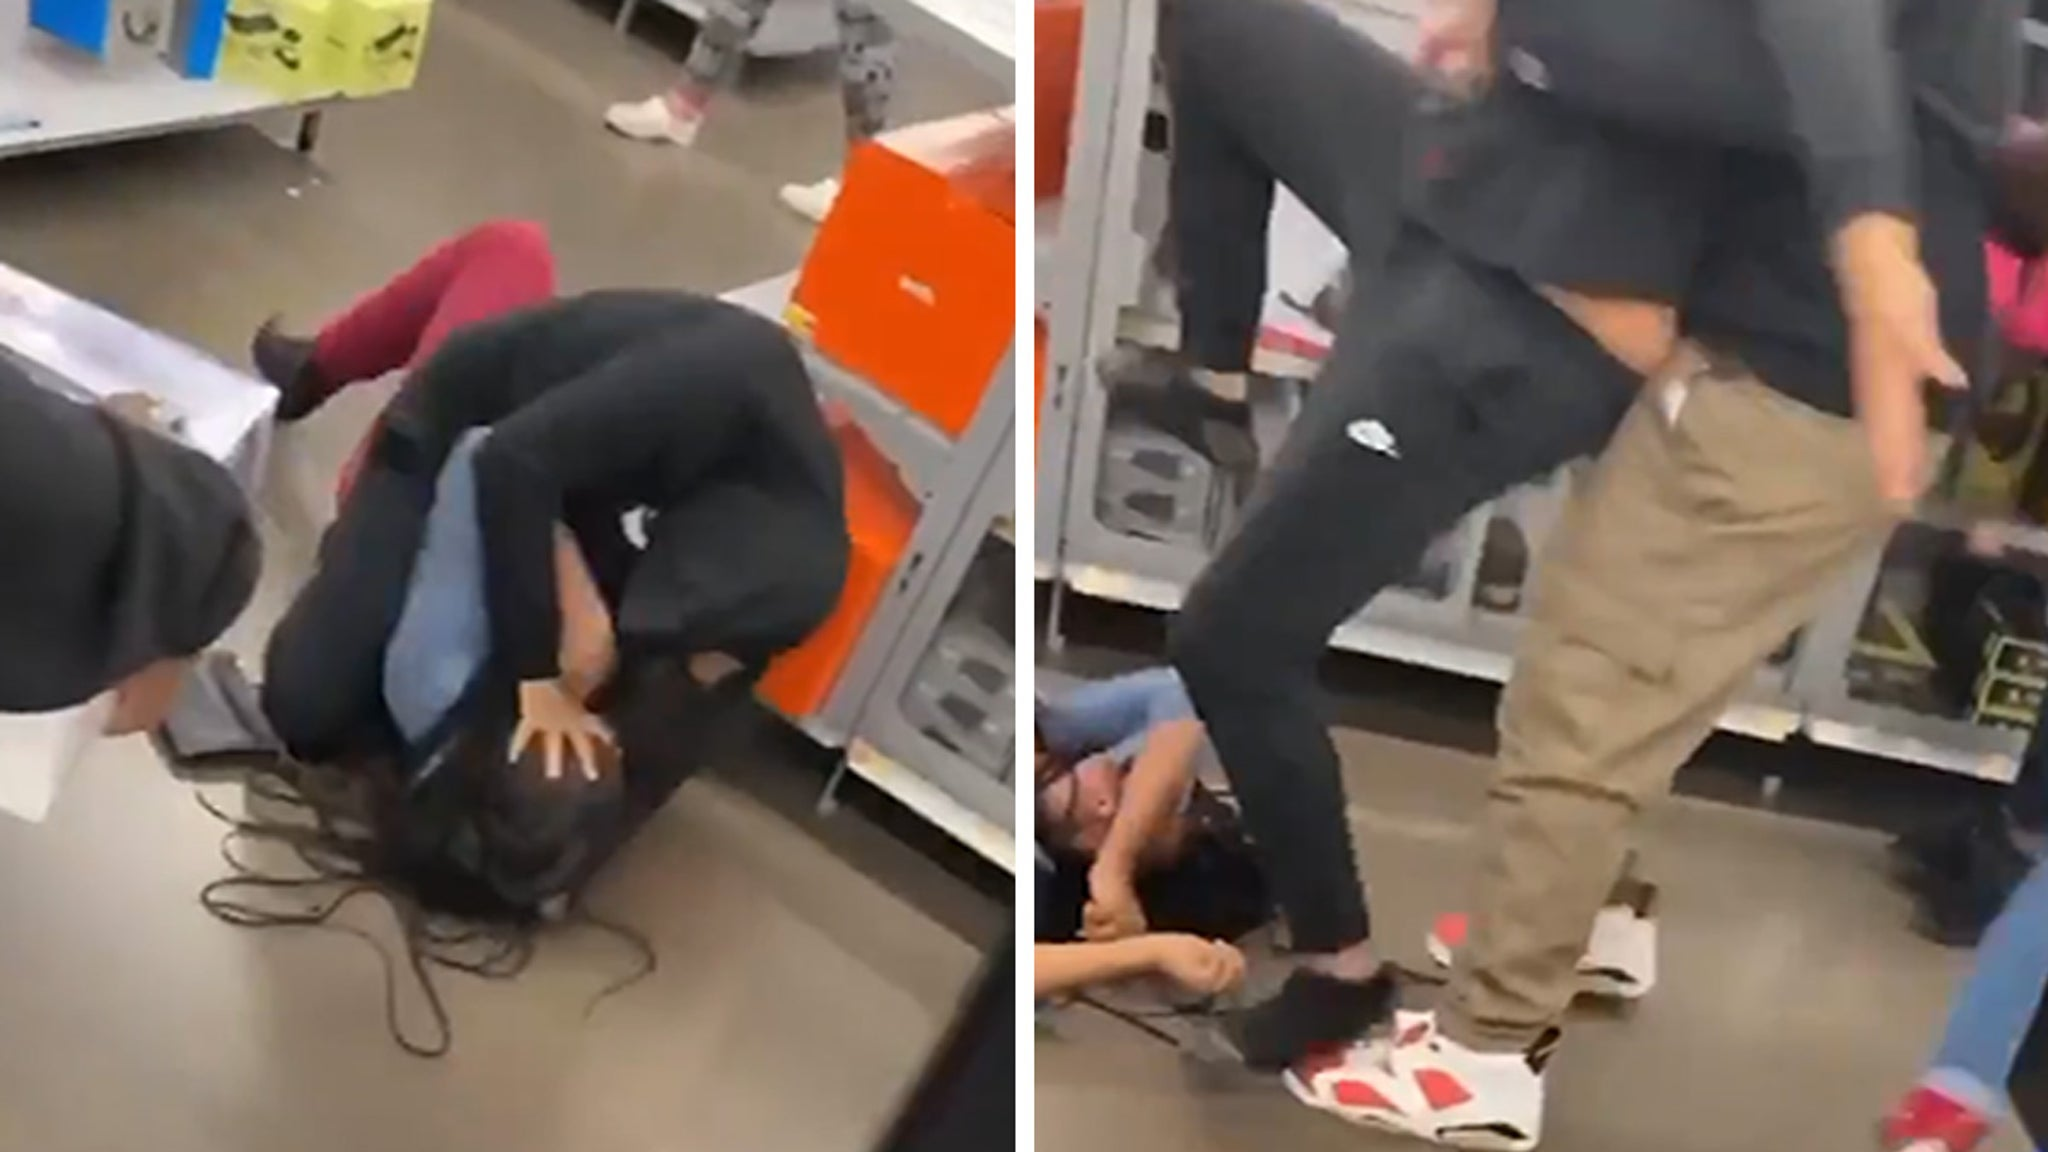 Walmart Brawl Ends with Woman Stomped On, Knocked Out Cold